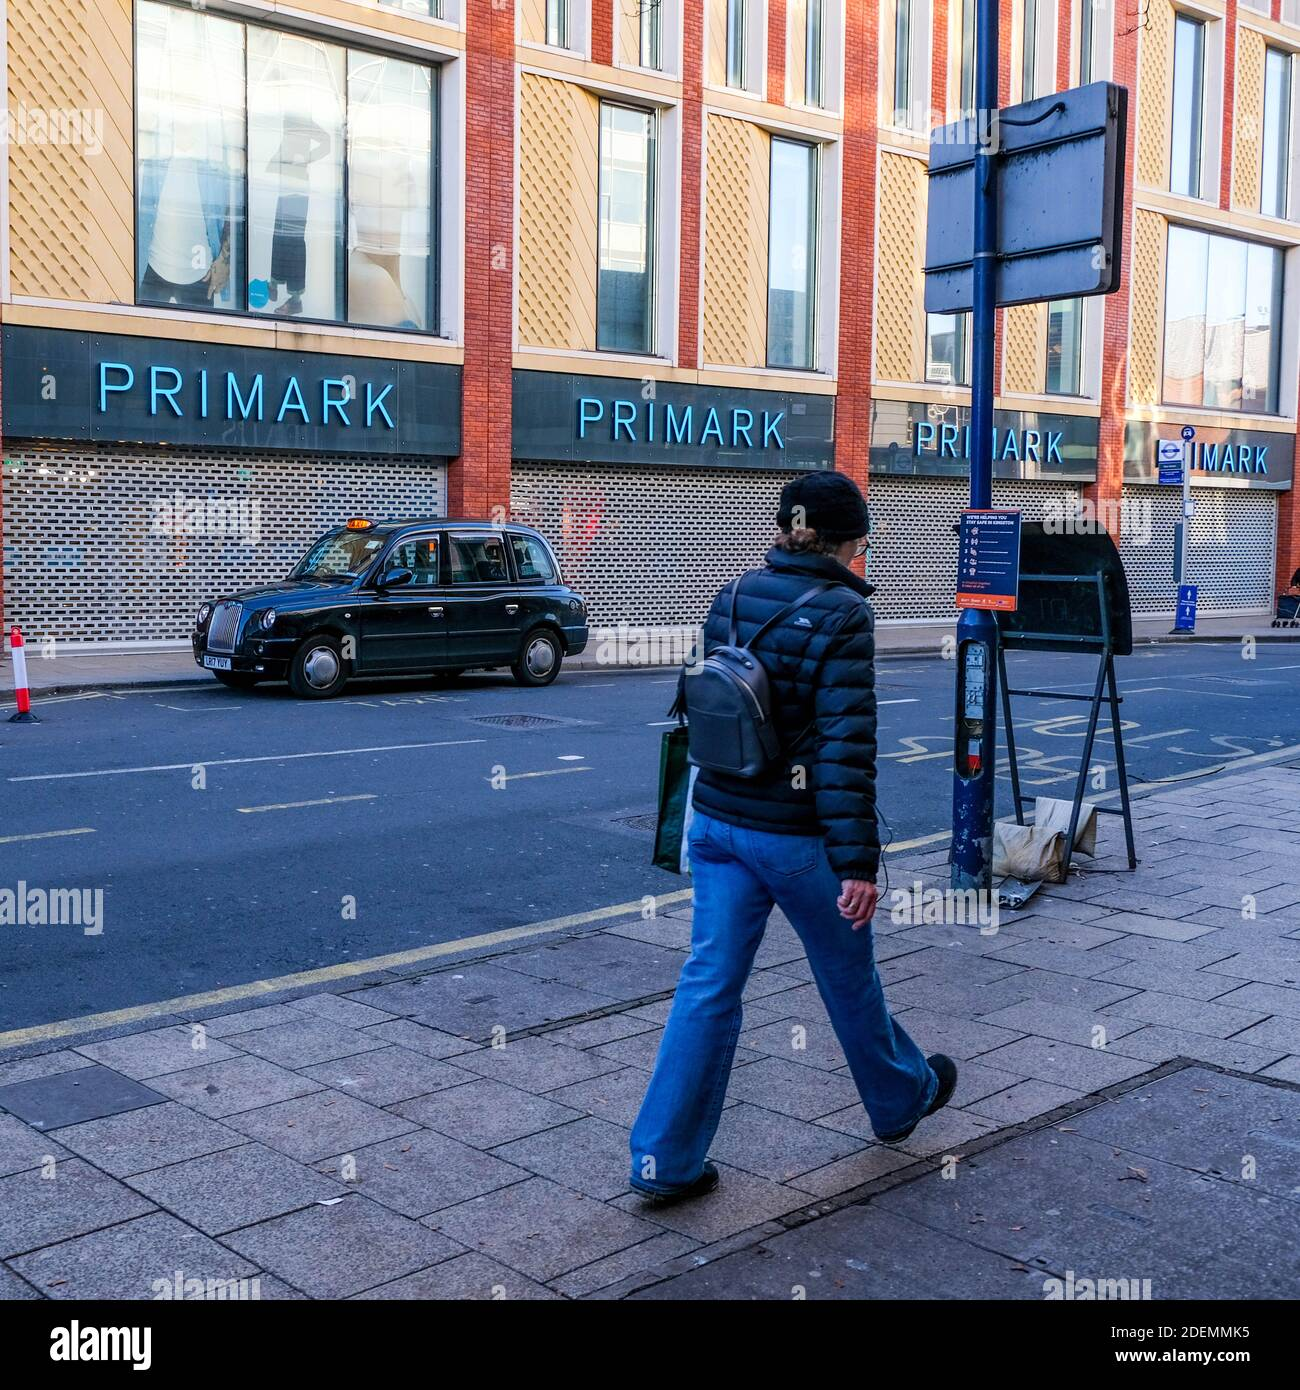 London UK, December 01 2020, Primark Discount Fashion Chain Closed Due To COVID-19 Pandemic Lockdown Stock Photo